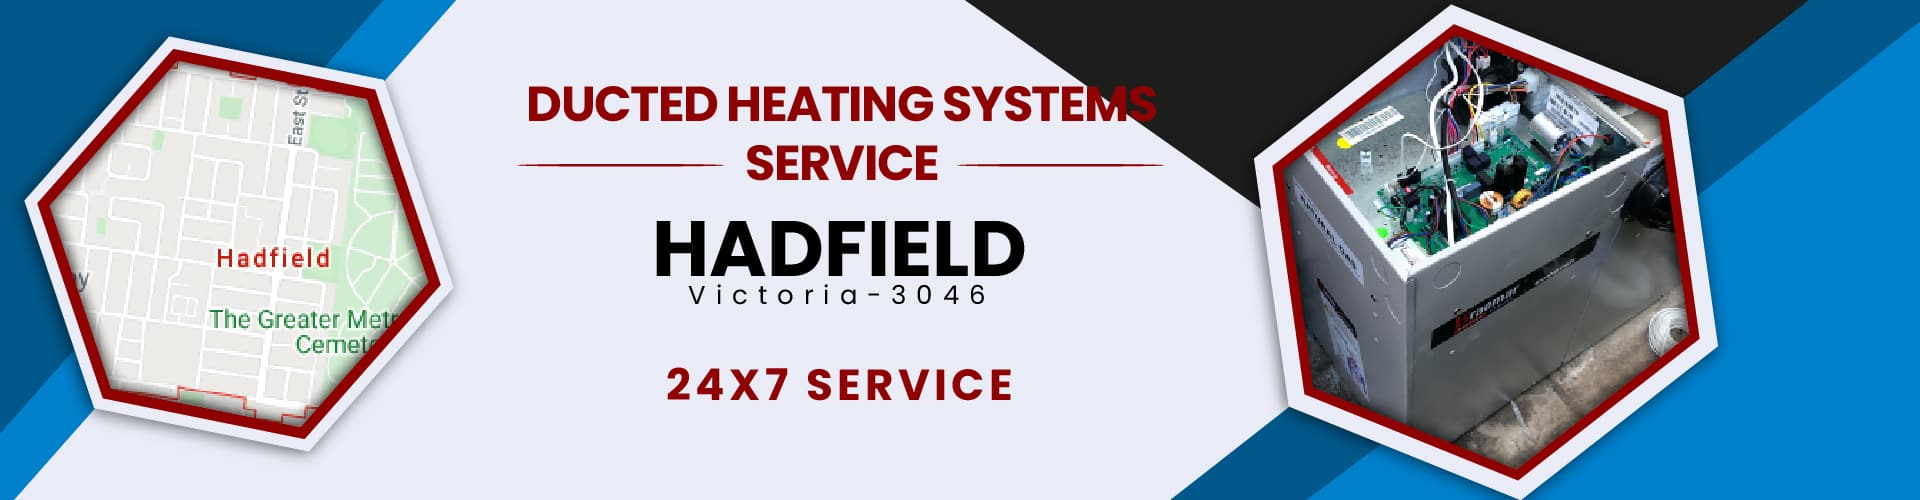 Ducted Heating Systems Hadfield